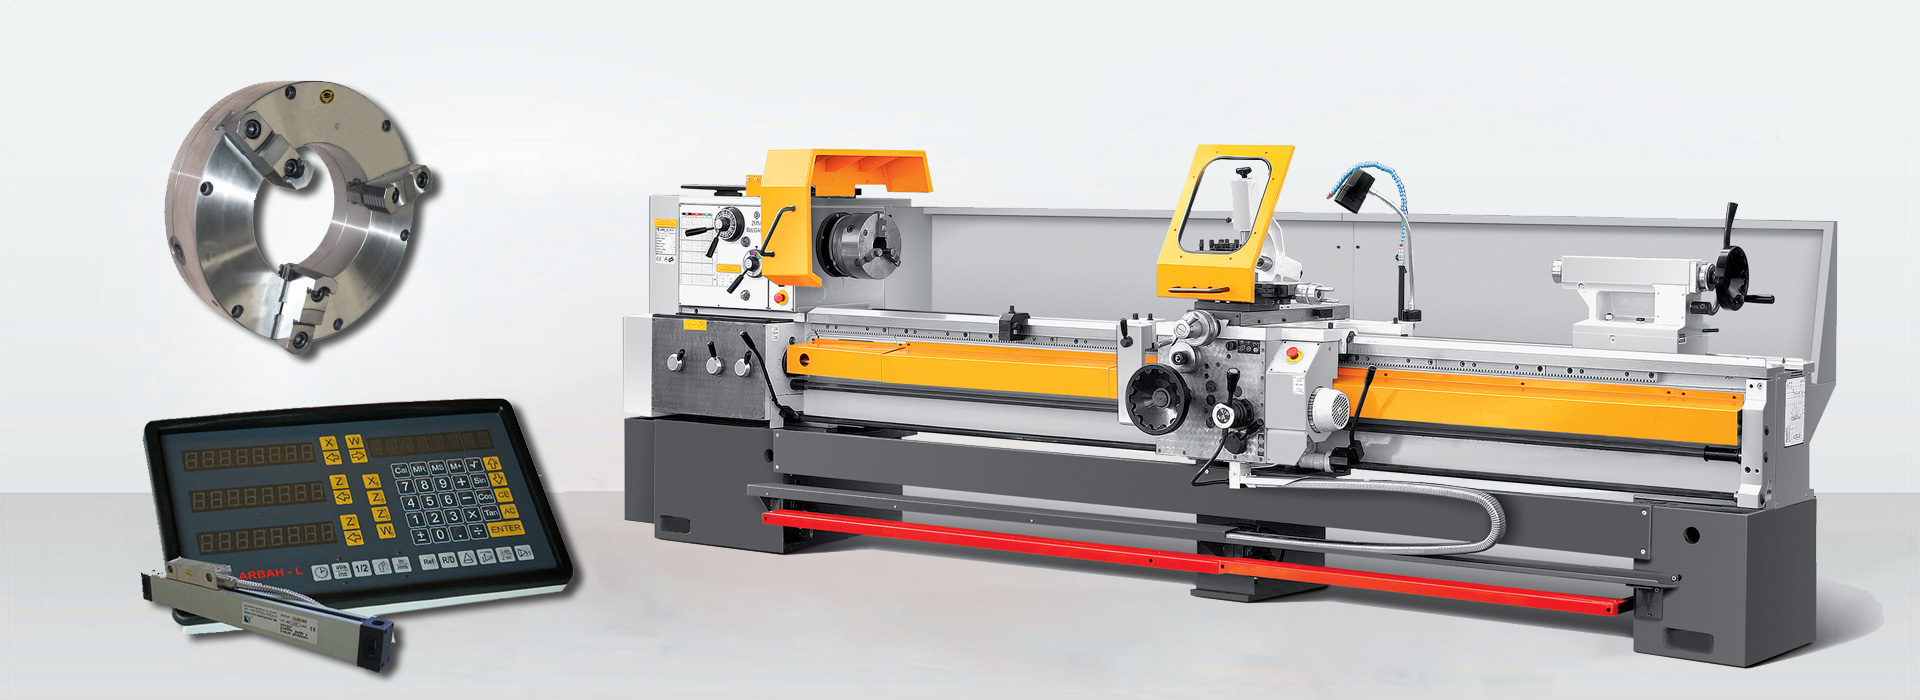 UNIVERSAL LATHE MACHINES